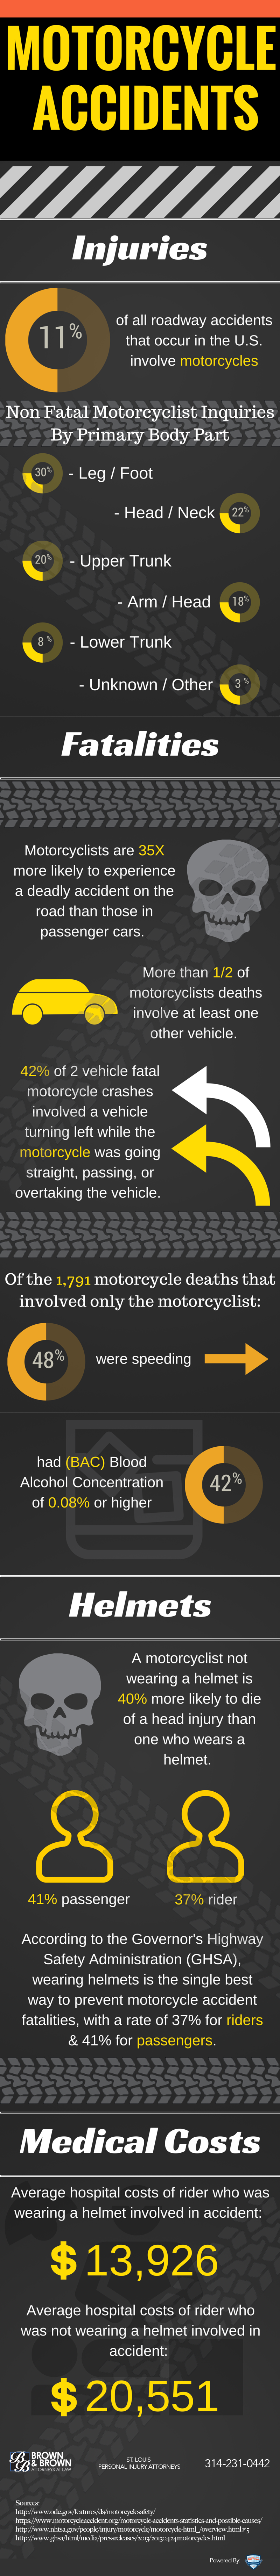 Motorcycle Accidents in the U.S.: An Infographic for Motorcycle Safety Awareness Month